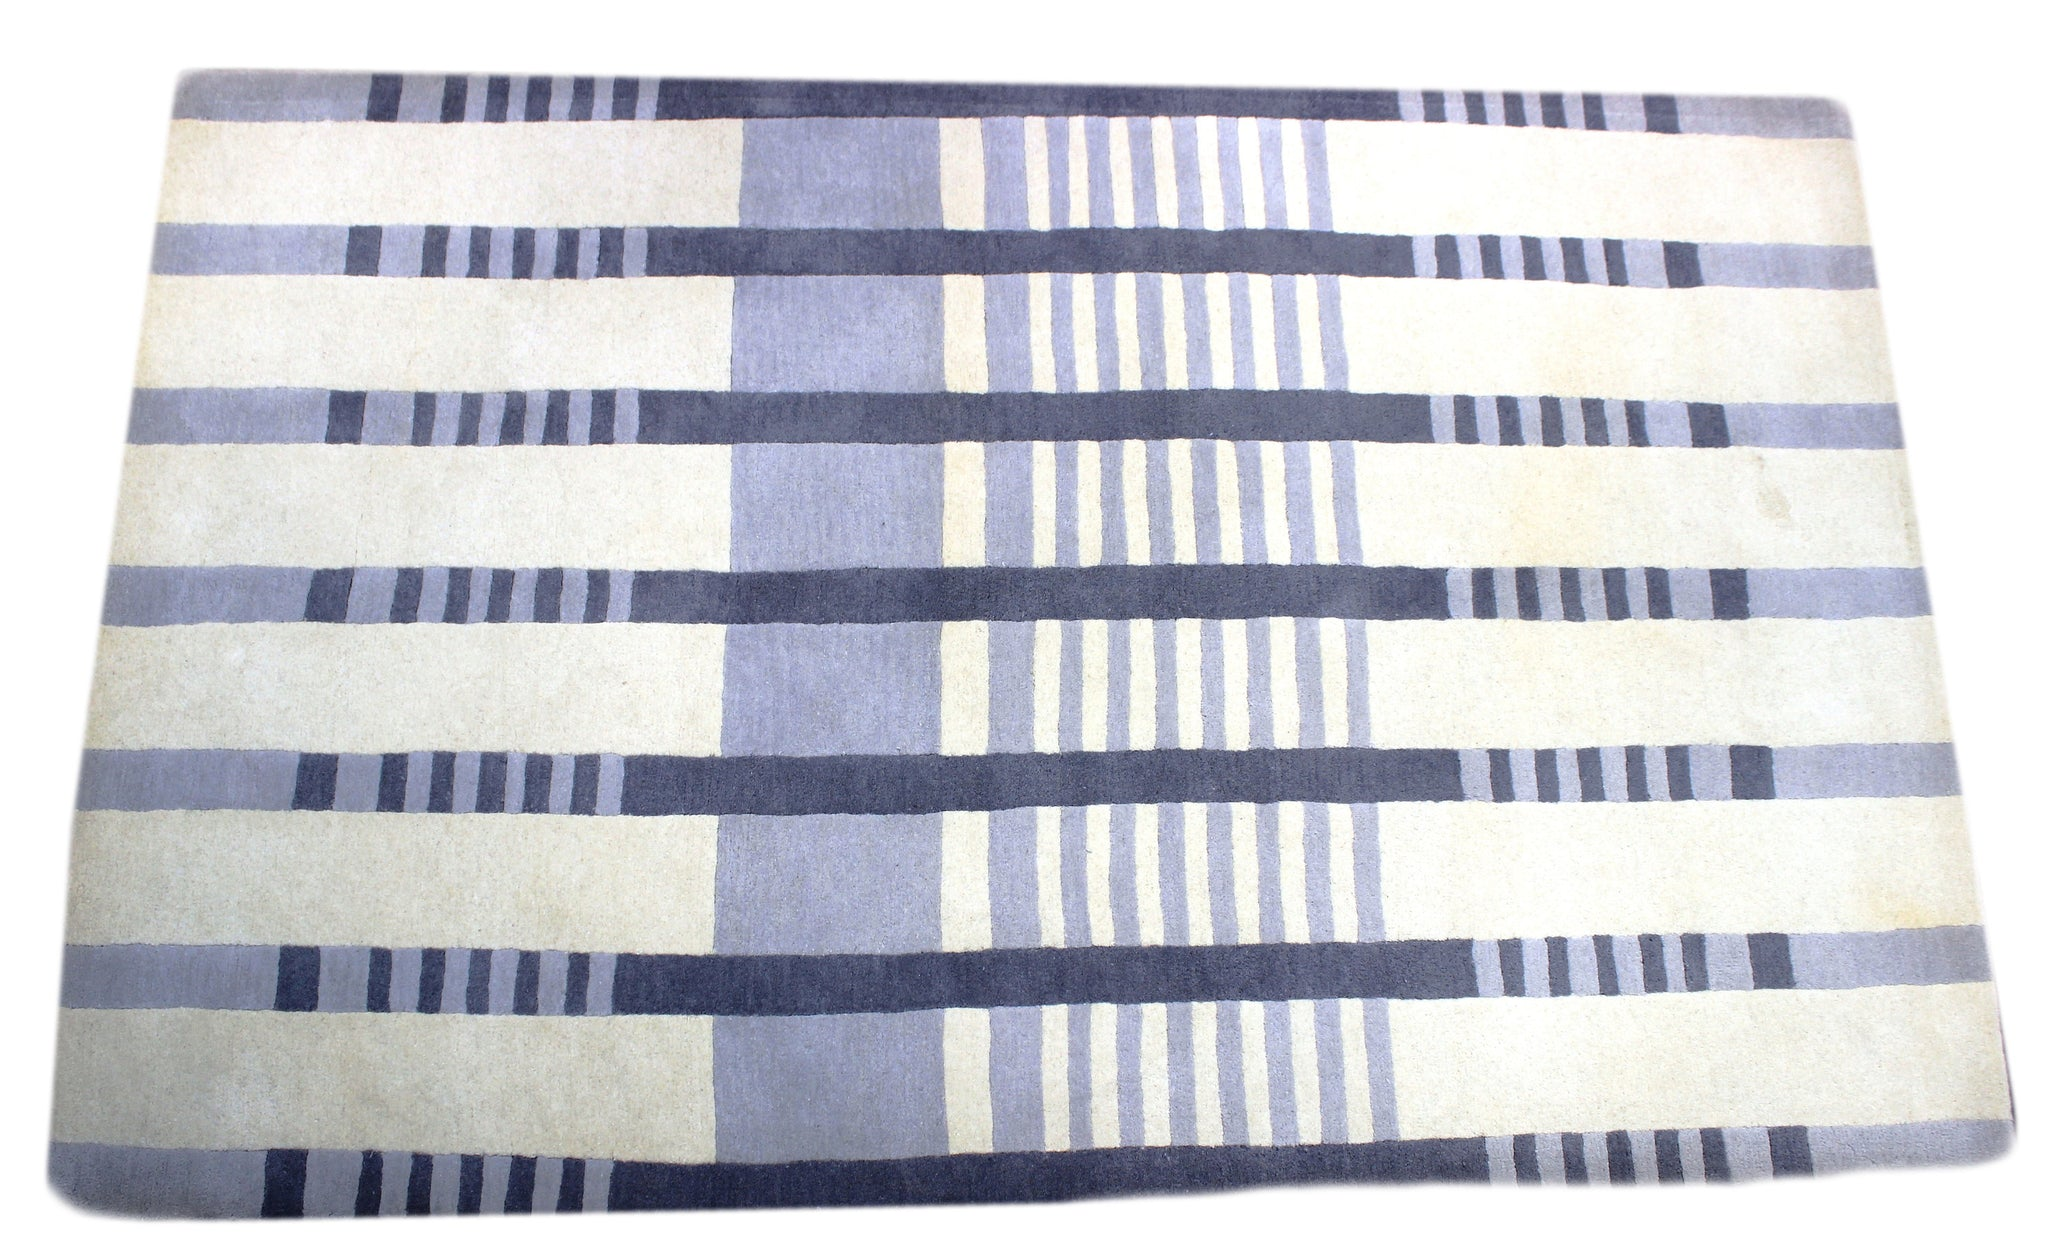 Silver and blue checkered handmade area rug by verve hand-made